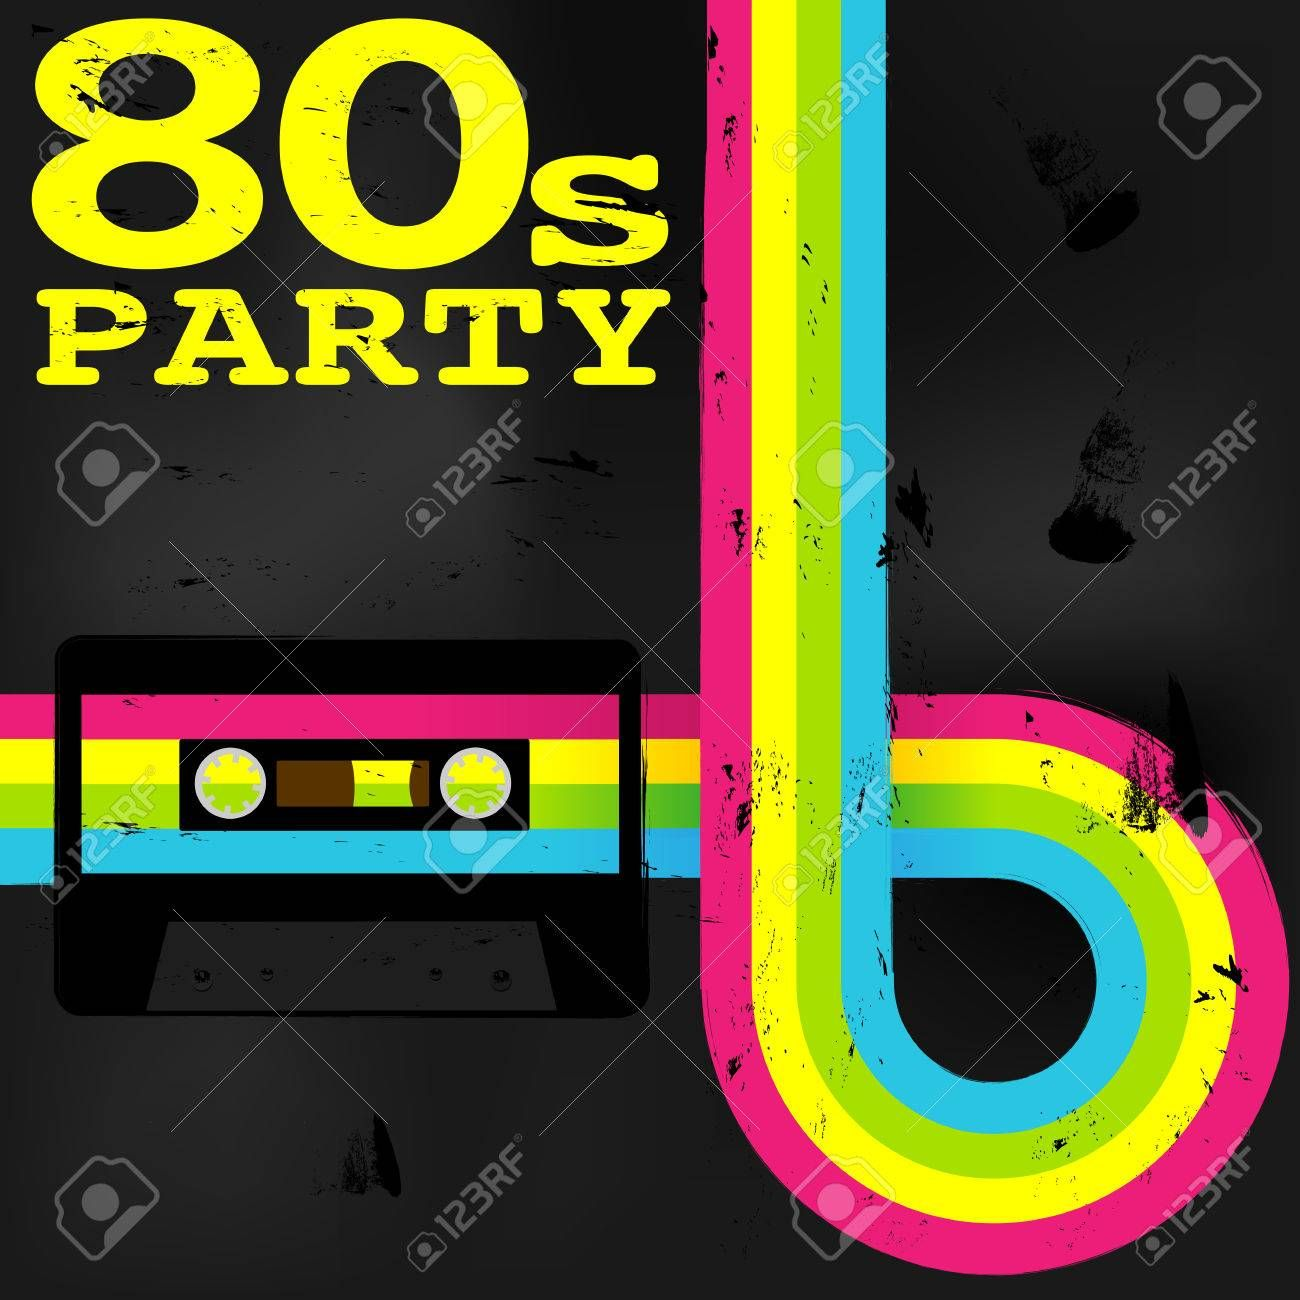 80s party invitations template